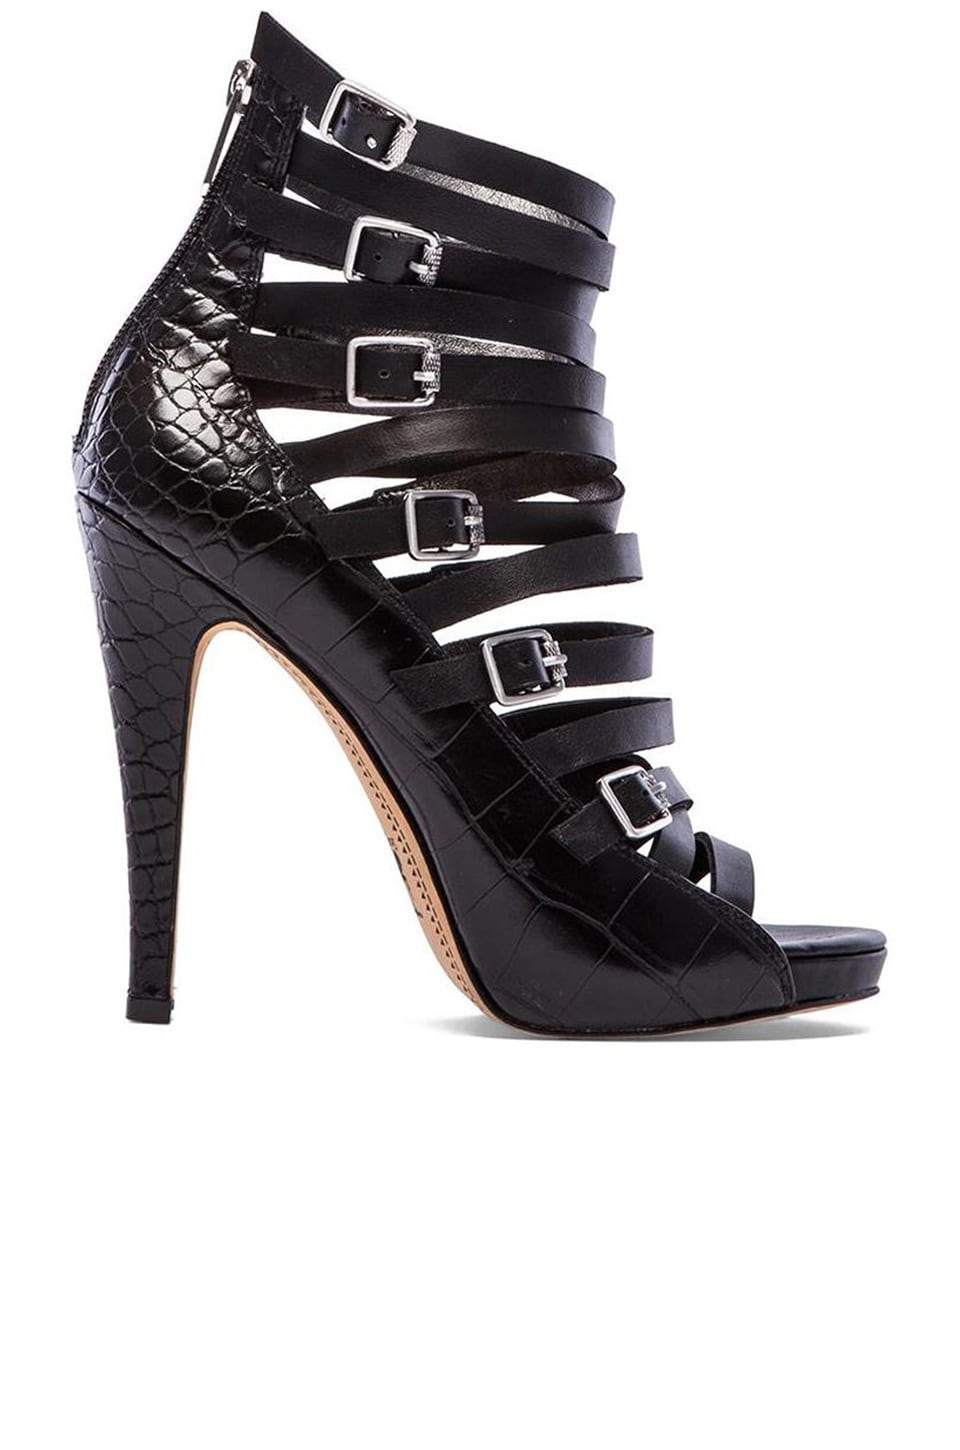 Circus by Sam Edelman Lennox Heel in Black